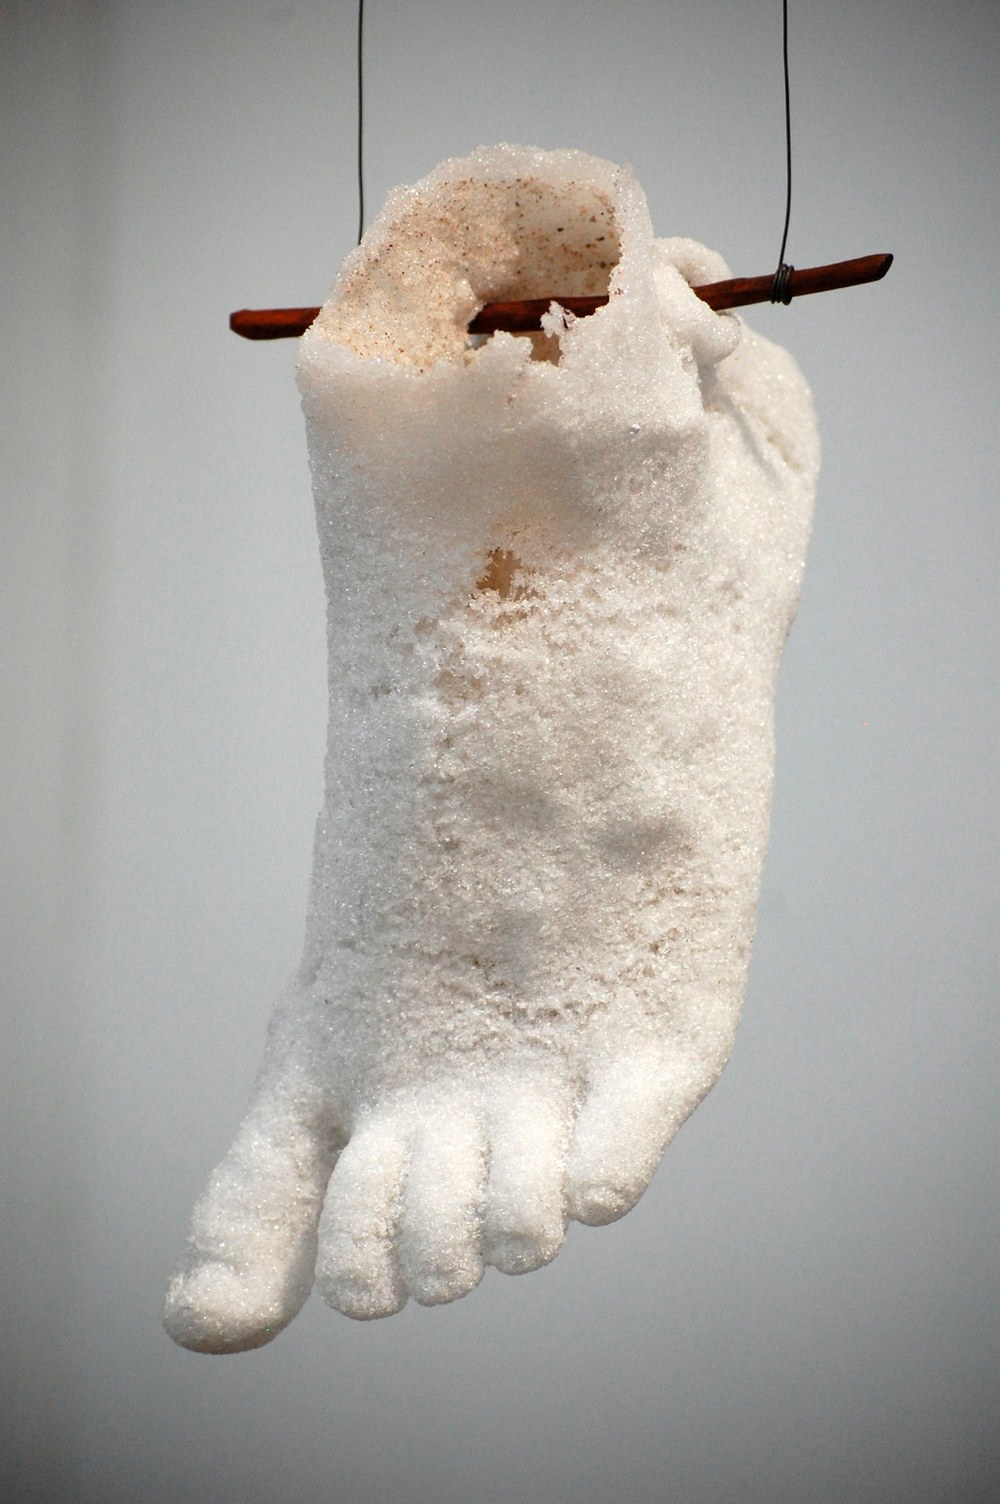 Lynne-Rachel Altman Phantom Foot, 2013 kiln fired sintered glass approximately 12 x 6 x 5 inches